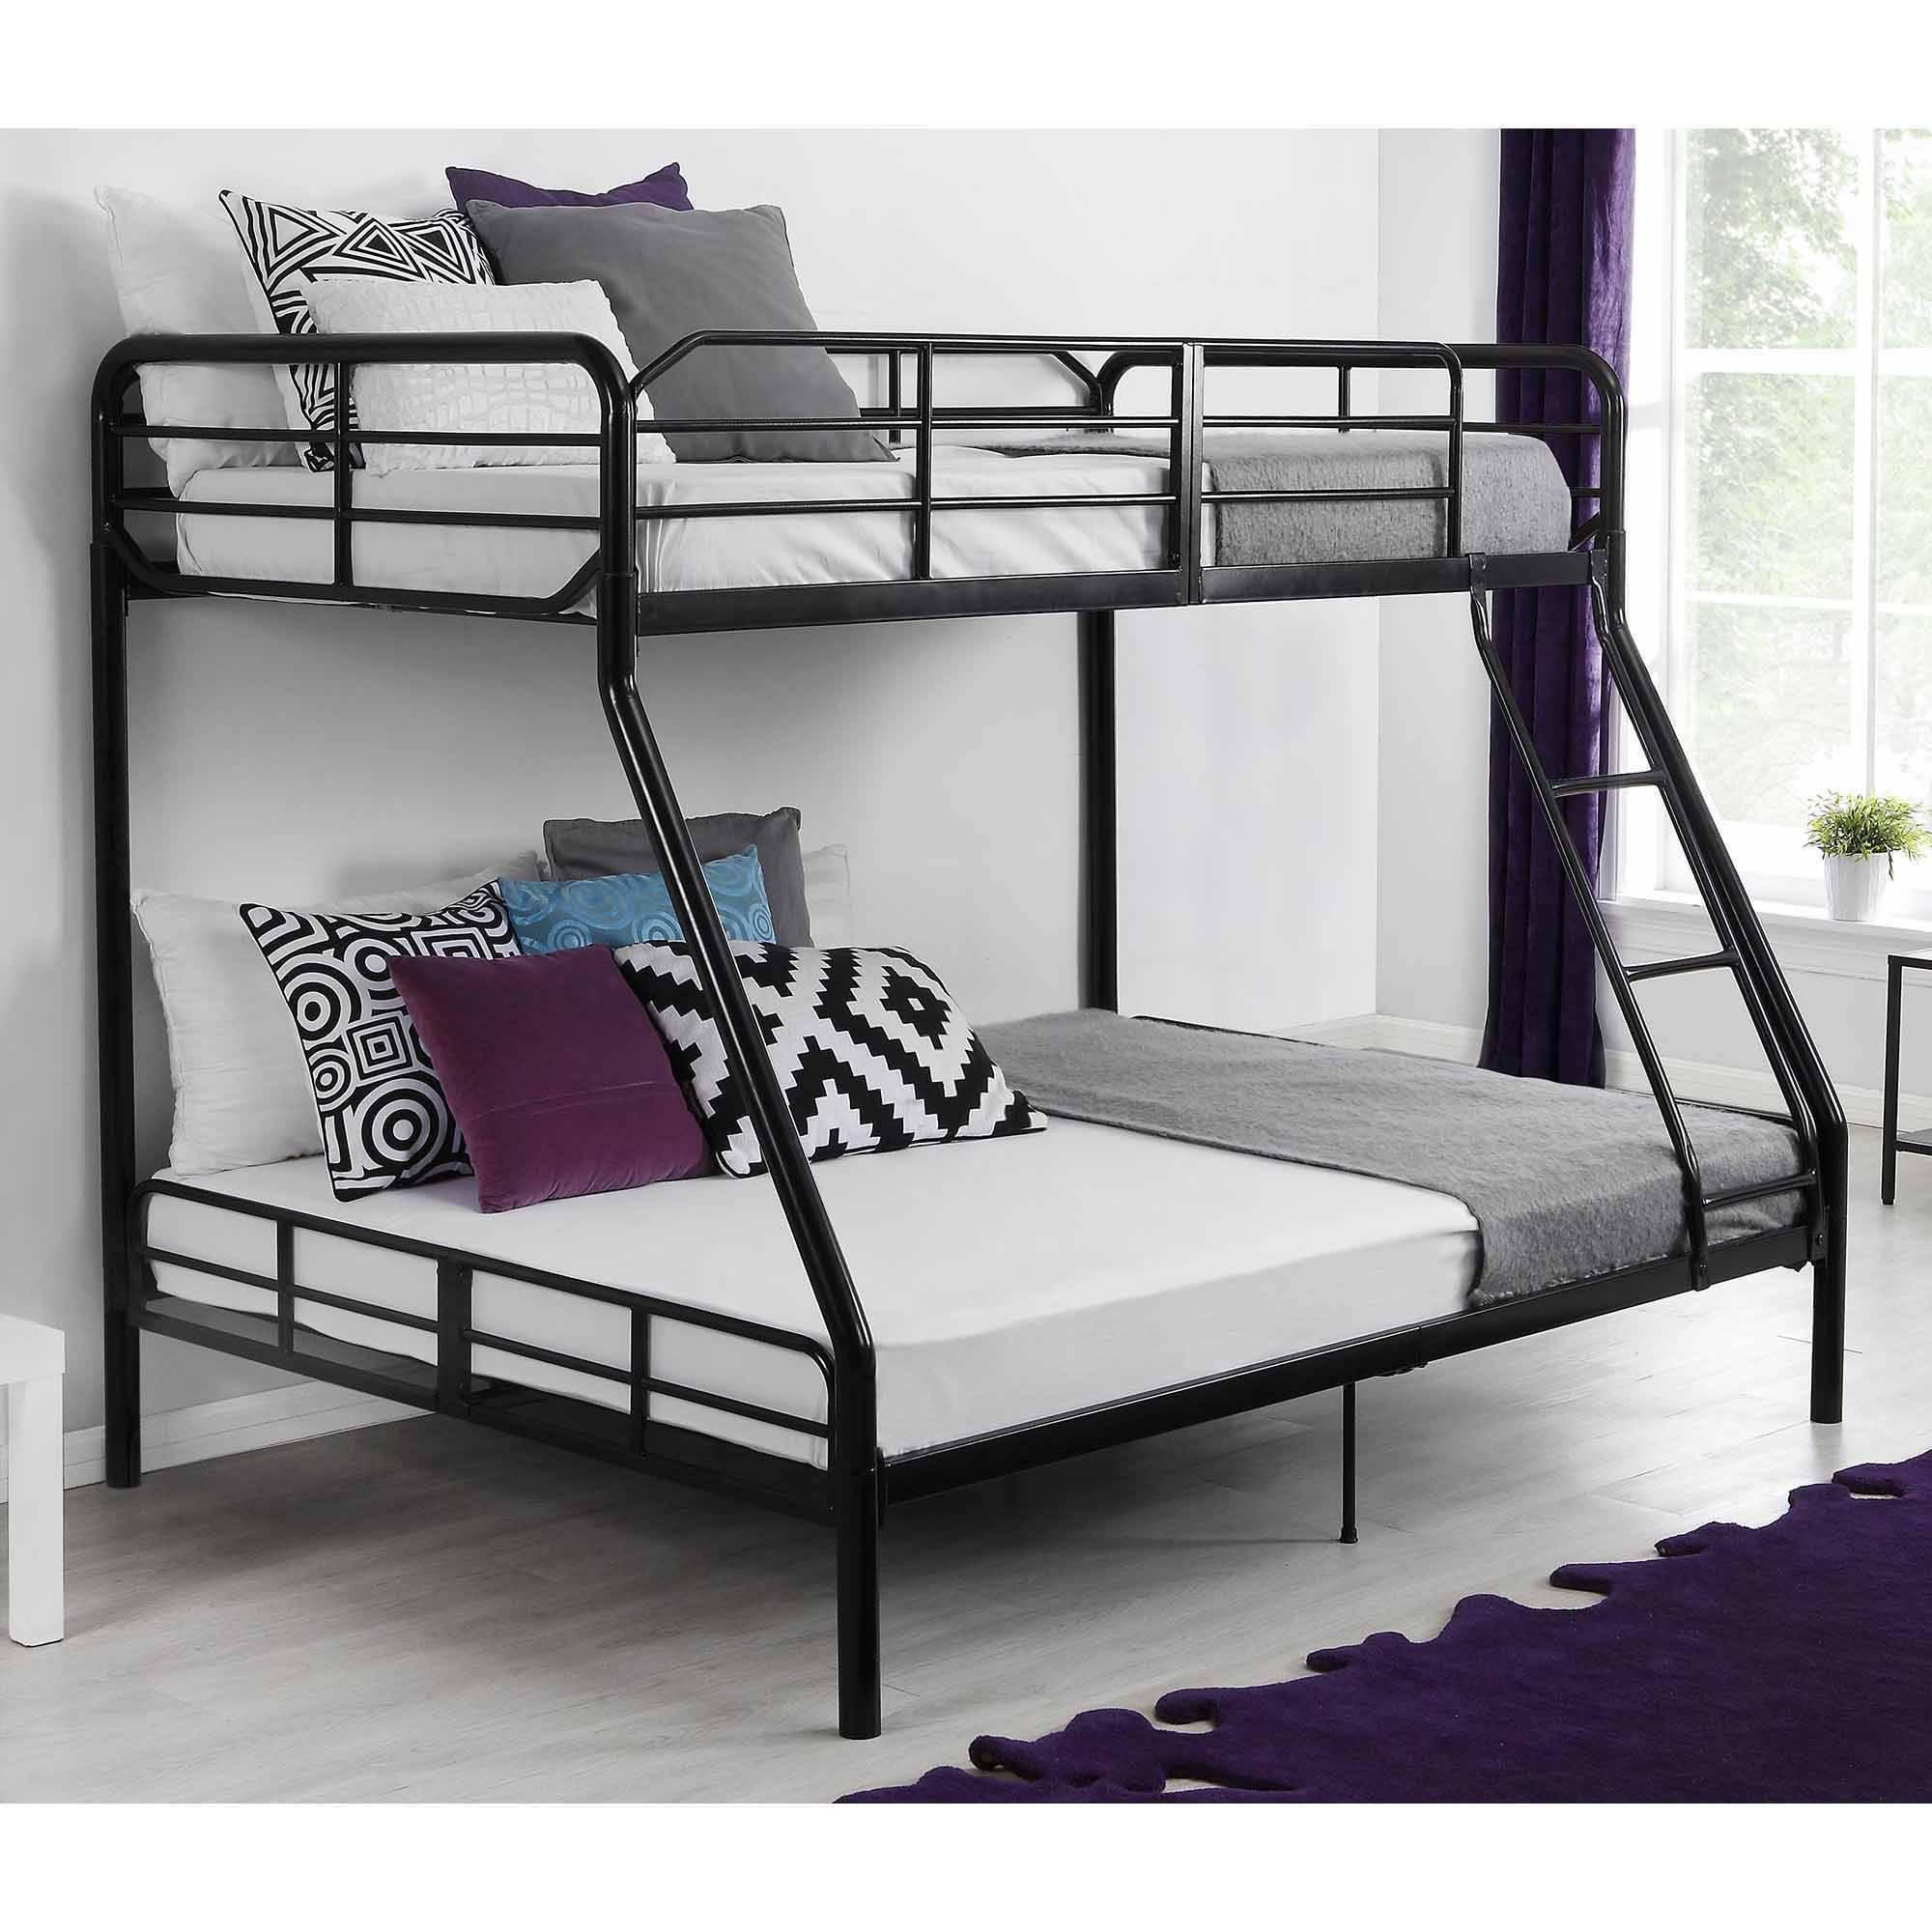 Metal bunk beds full over full - Click Thumbnail To Enlarge Contemporary Design Sturdy Metal Frame Secured Front Ladder The Mainstays Twin Over Full Bunk Bed